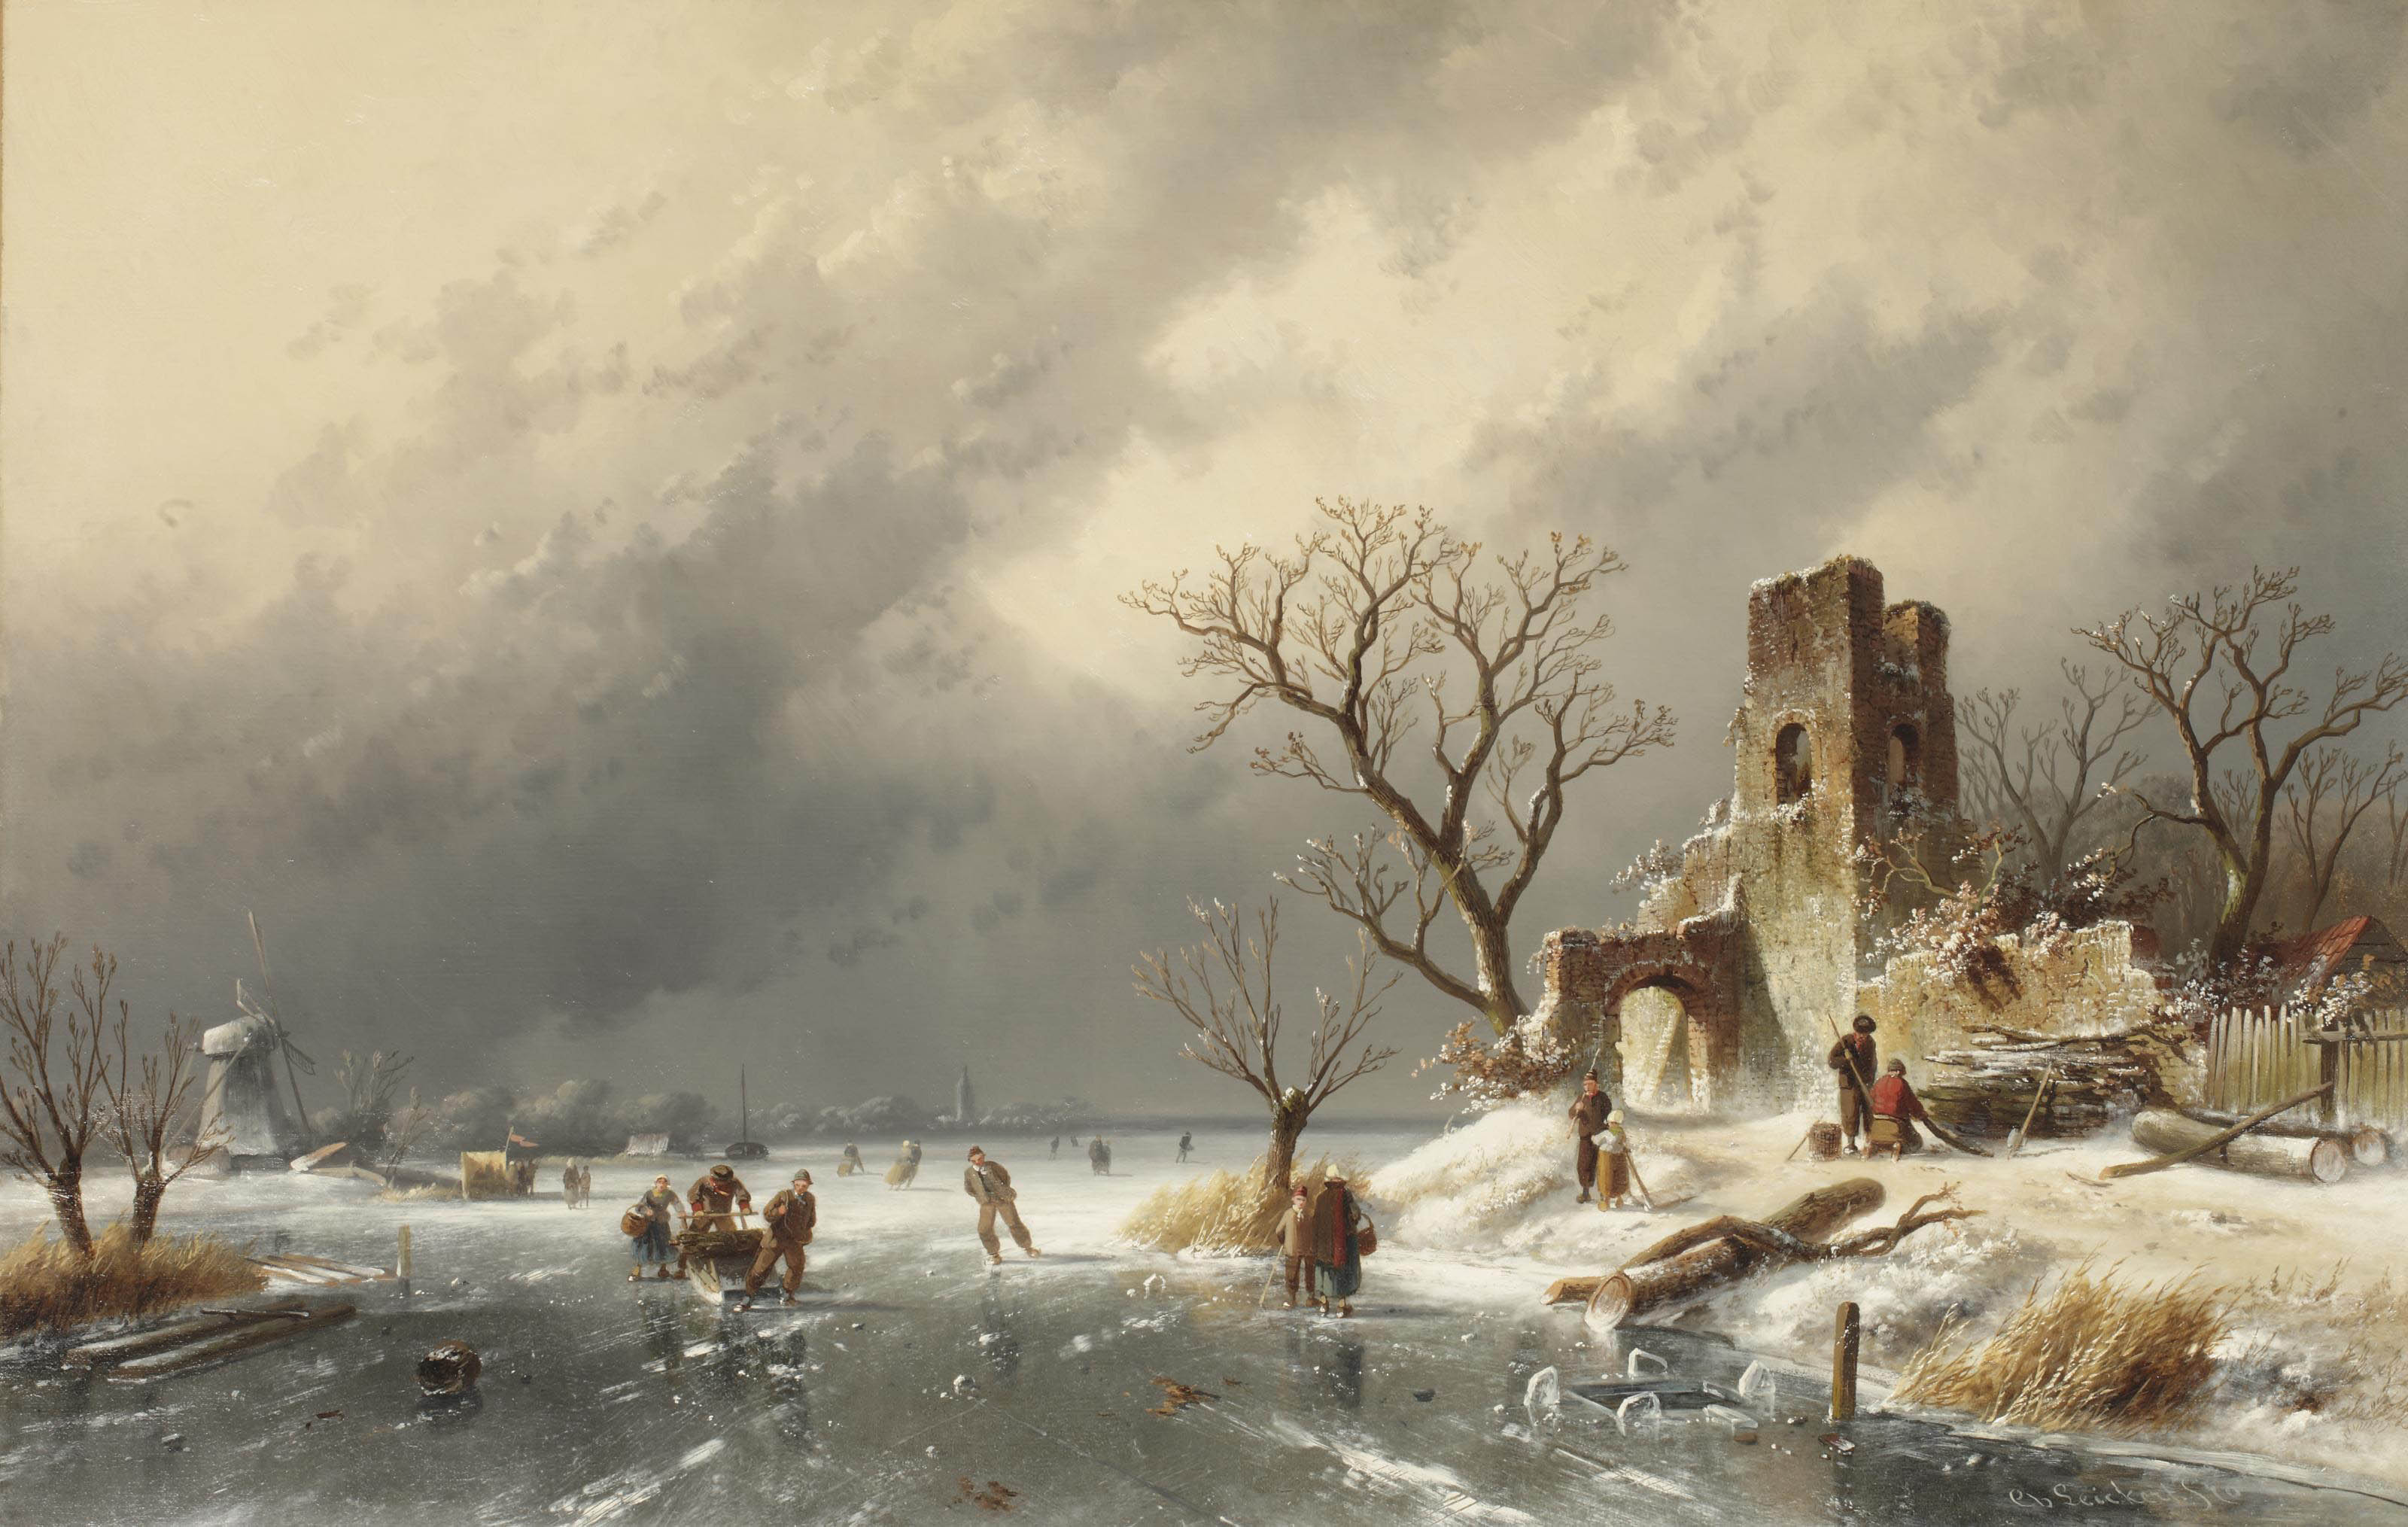 A winter landscape with skaters in the ice